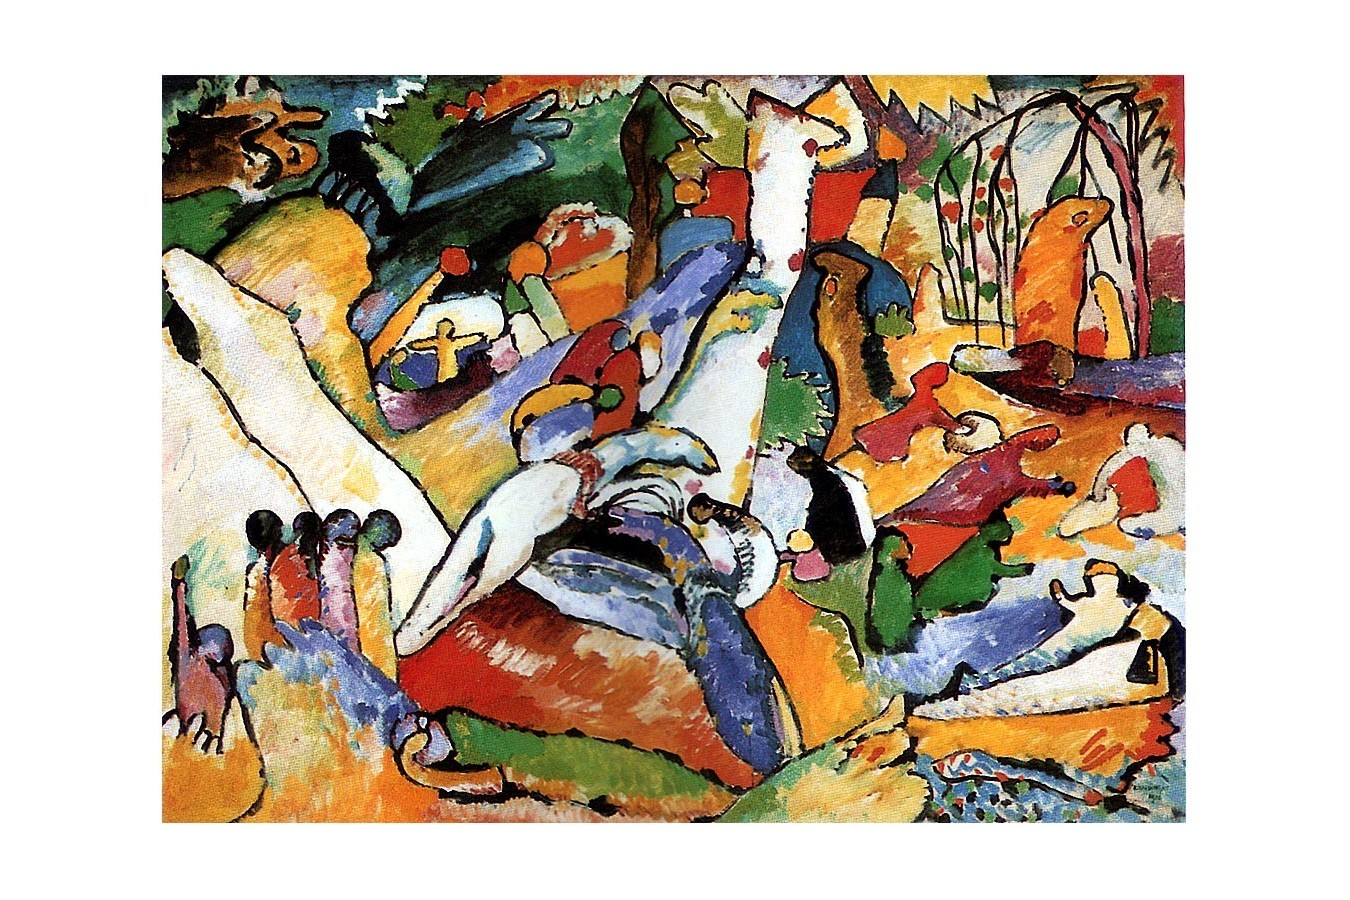 """Puzzle D-Toys - Vassily Kandinsky: Sketch for """"Composition II"""" / study, 1000 piese (72849-1)"""